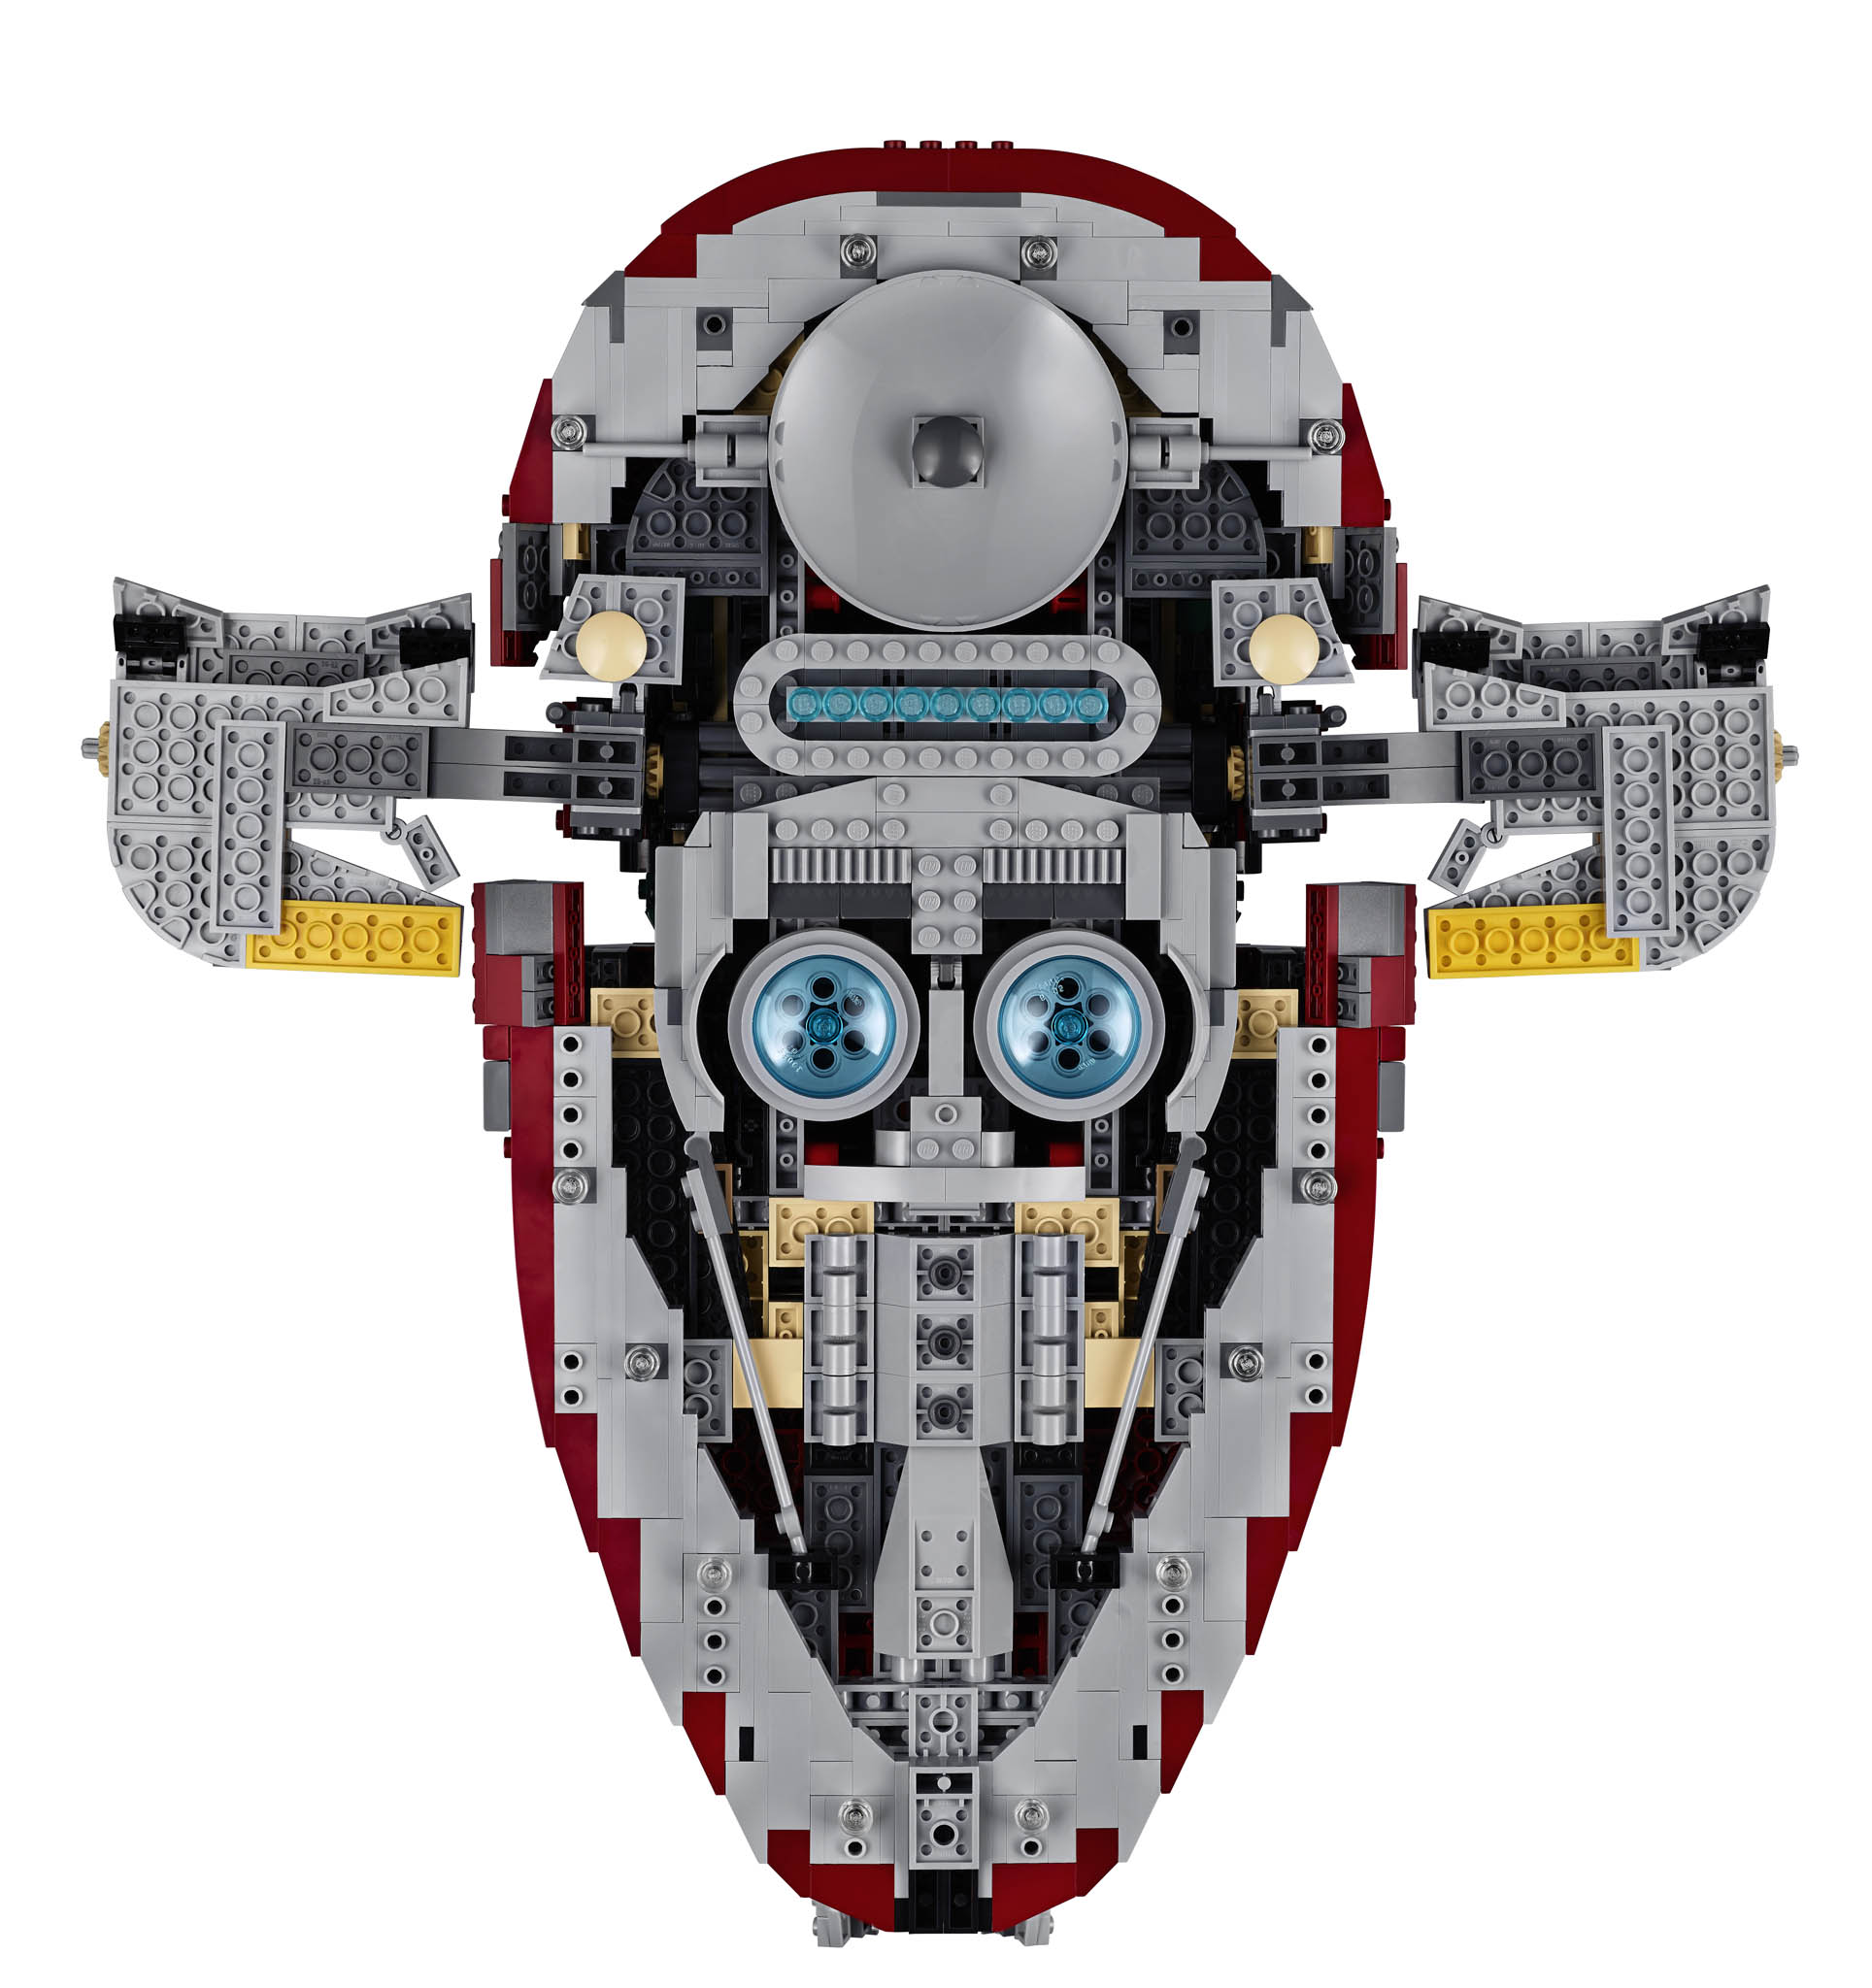 The design at the bottom of the 75060 Slave I Ship